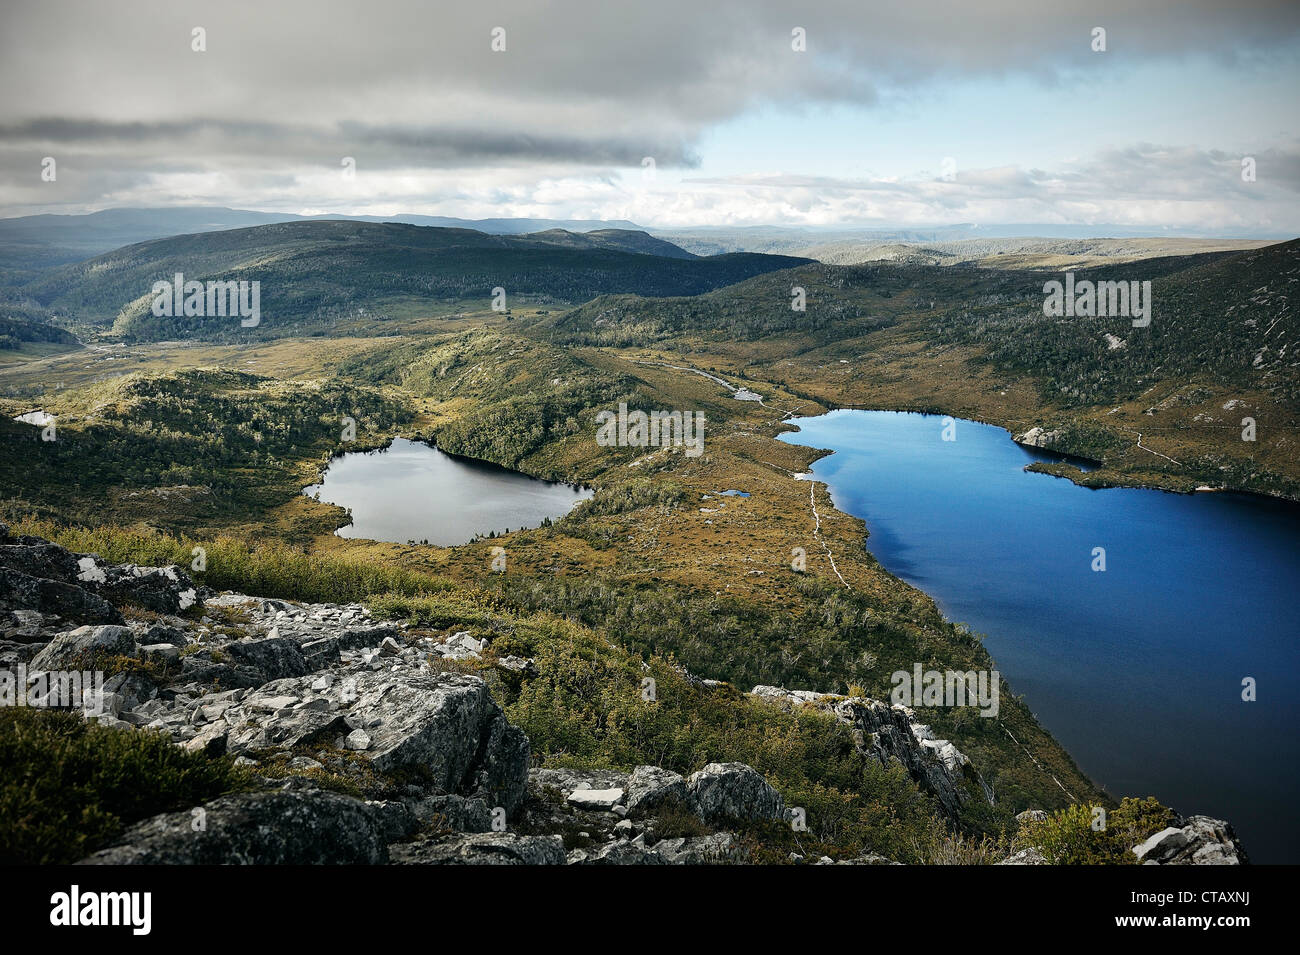 Viewpoint Marions lookout acorss Tasmanias wilderness and Dove Lake, Overland Track, Cradle Mountain Lake St Clair - Stock Image